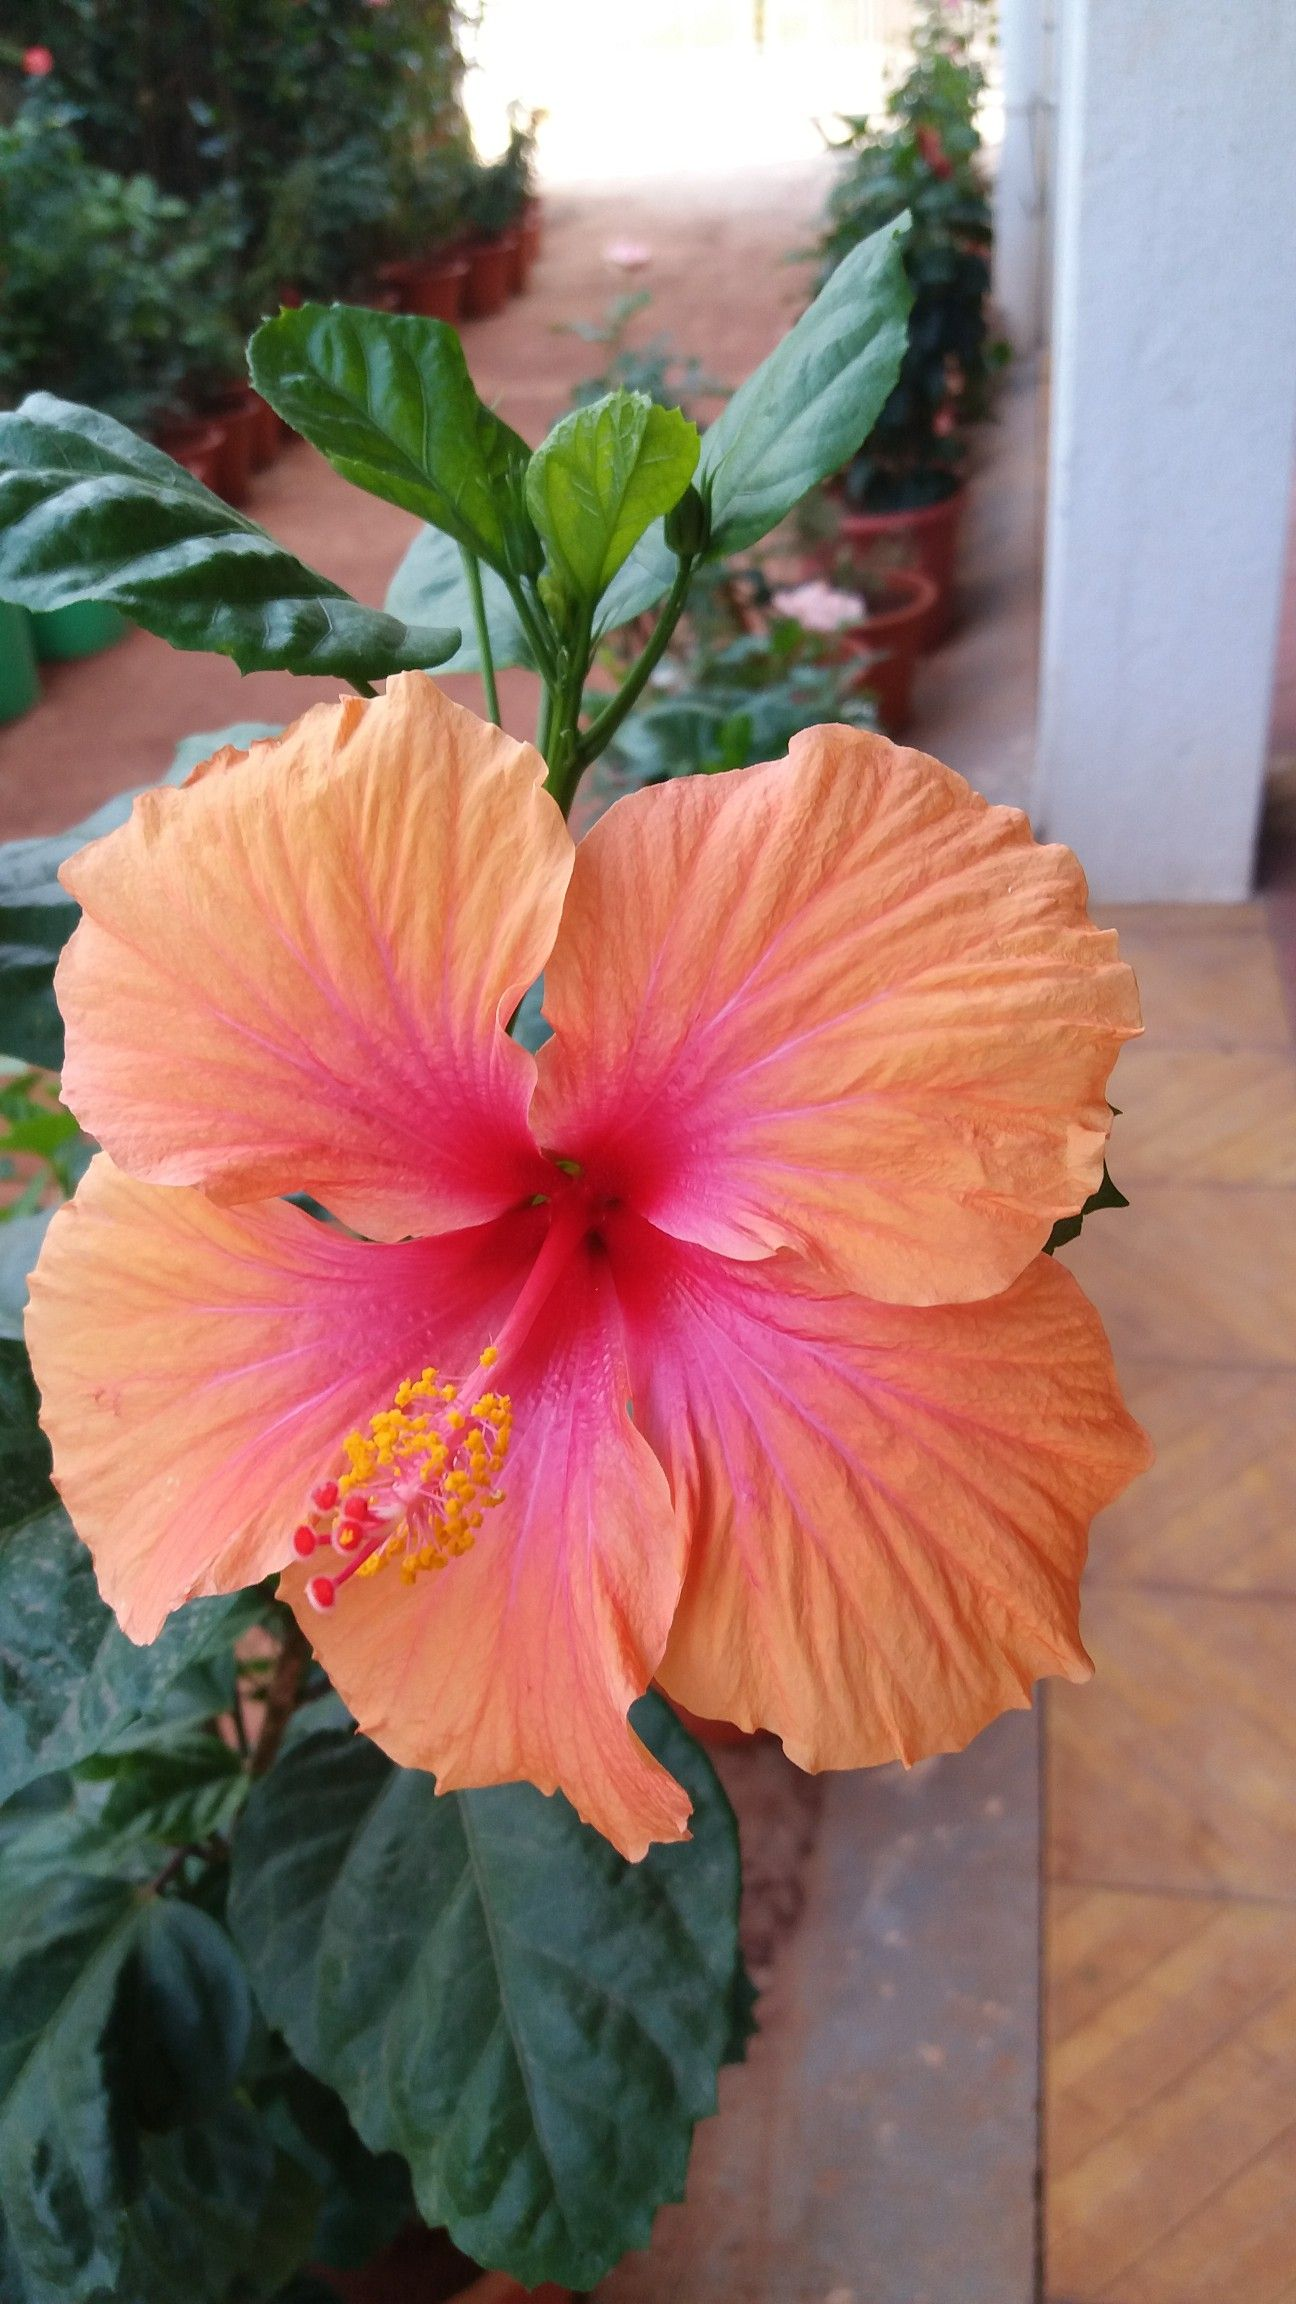 Pin By Zoe Closs On Garden Hibiscus Flowers Hibiscus Plant Hibiscus